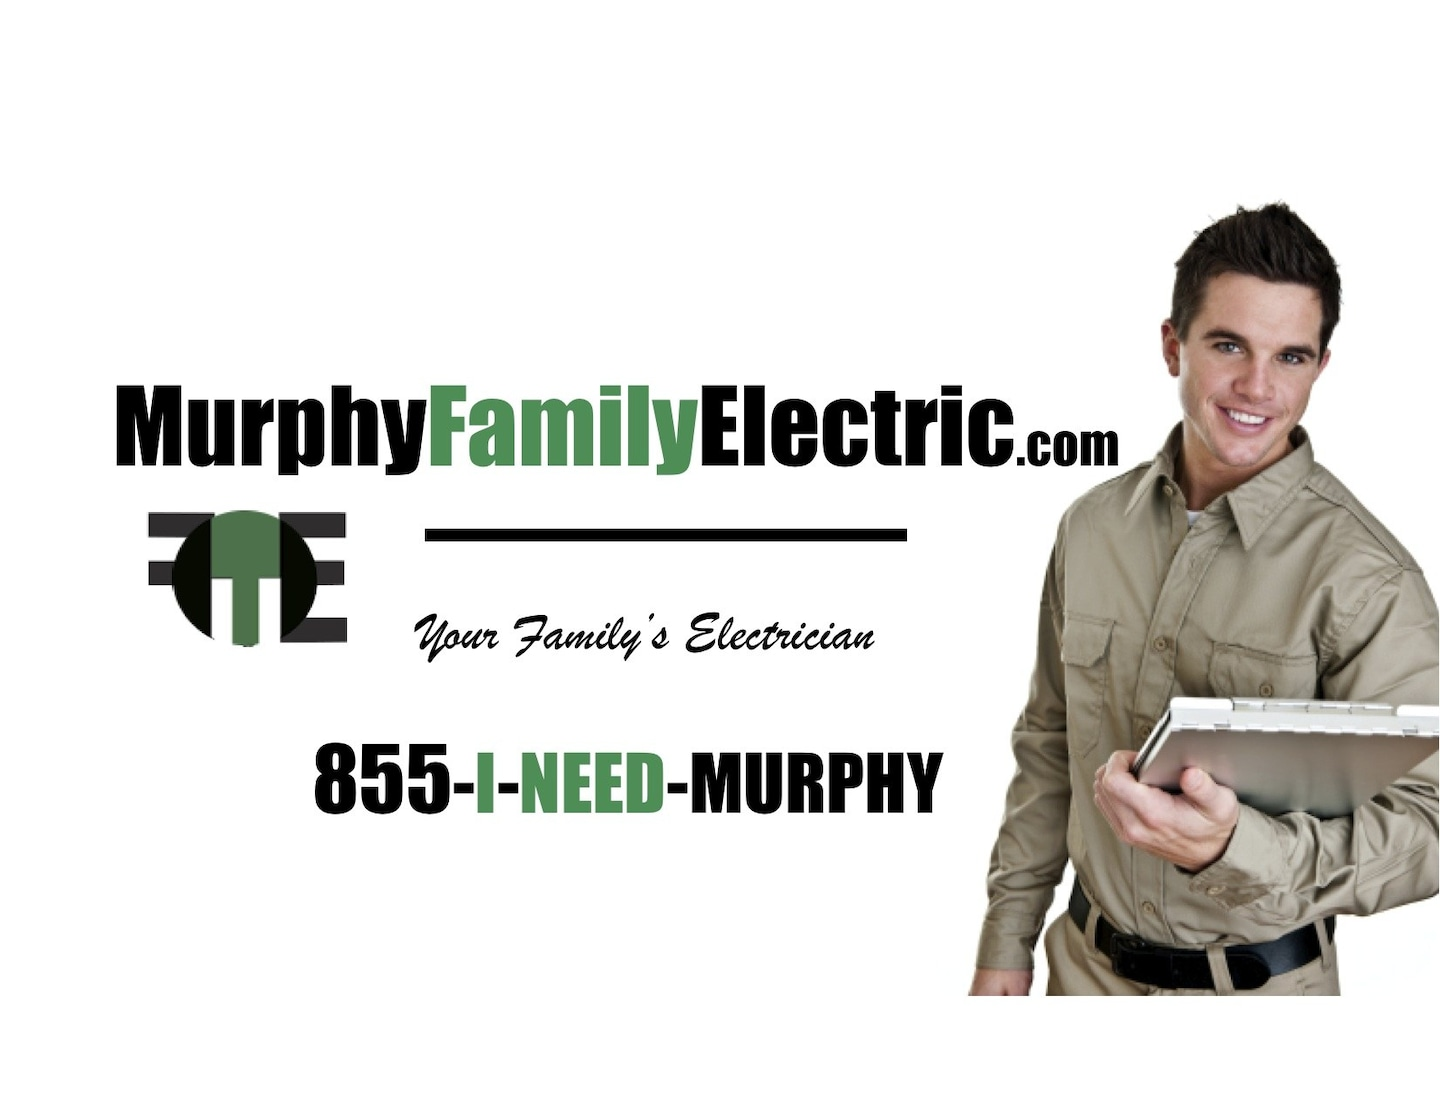 Murphy Family Electric